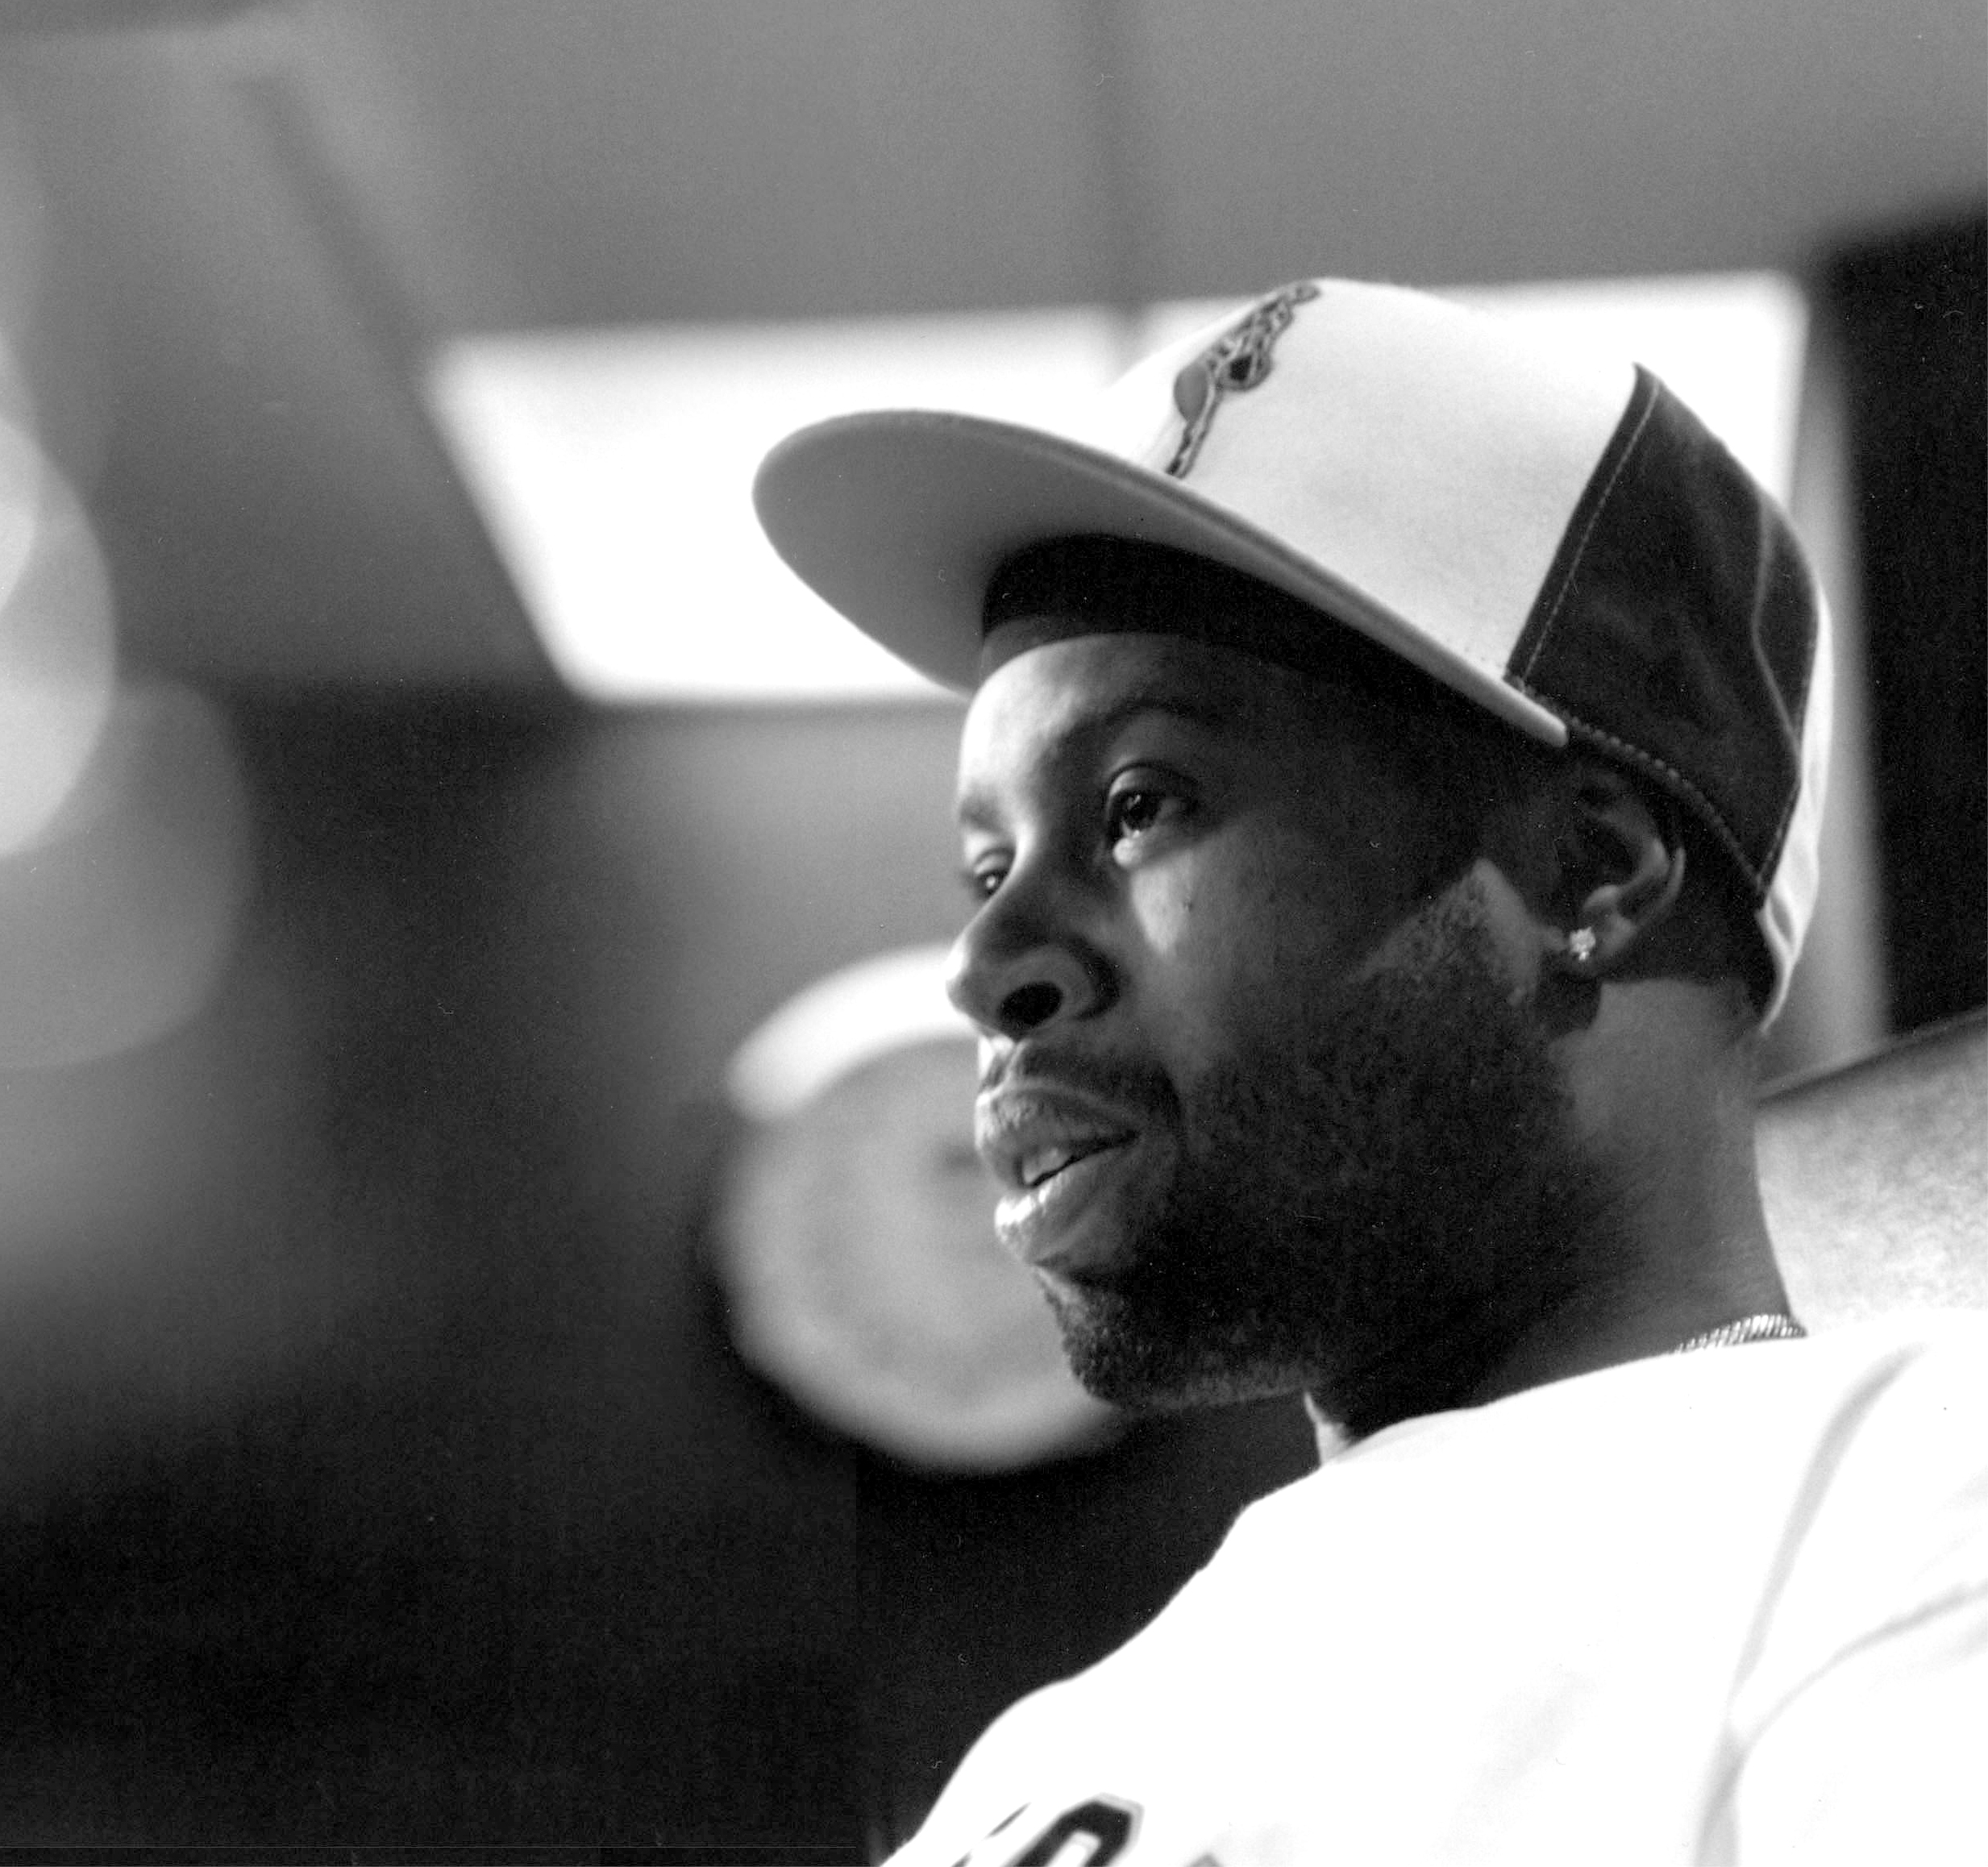 J Dilla - Alchetron, The Free Social Encyclopedia